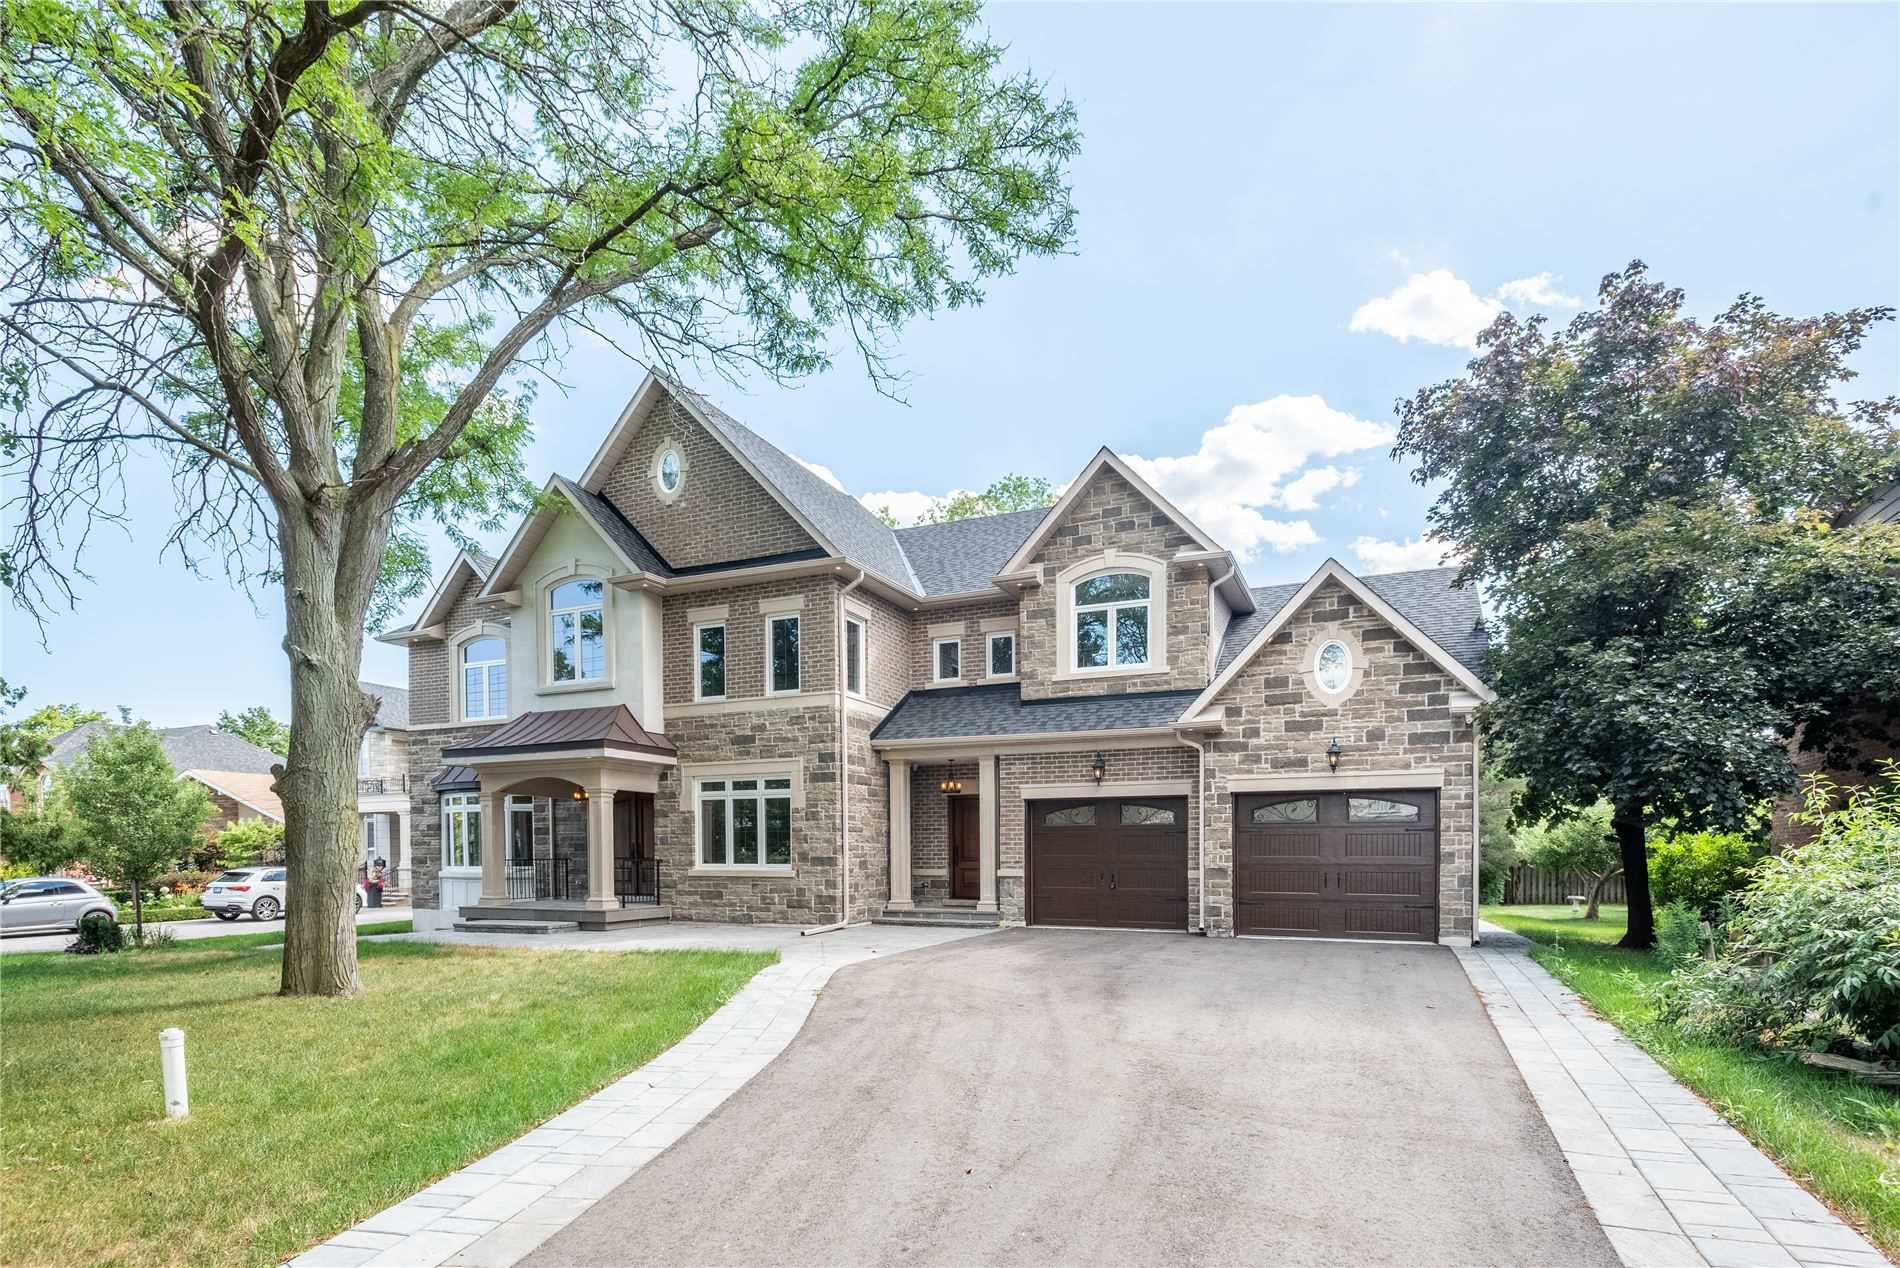 2406 Glengarry Rd, Mississauga, Ontario L5C1Y2, 4 Bedrooms Bedrooms, 12 Rooms Rooms,5 BathroomsBathrooms,Detached,For Sale,Glengarry,W4852655